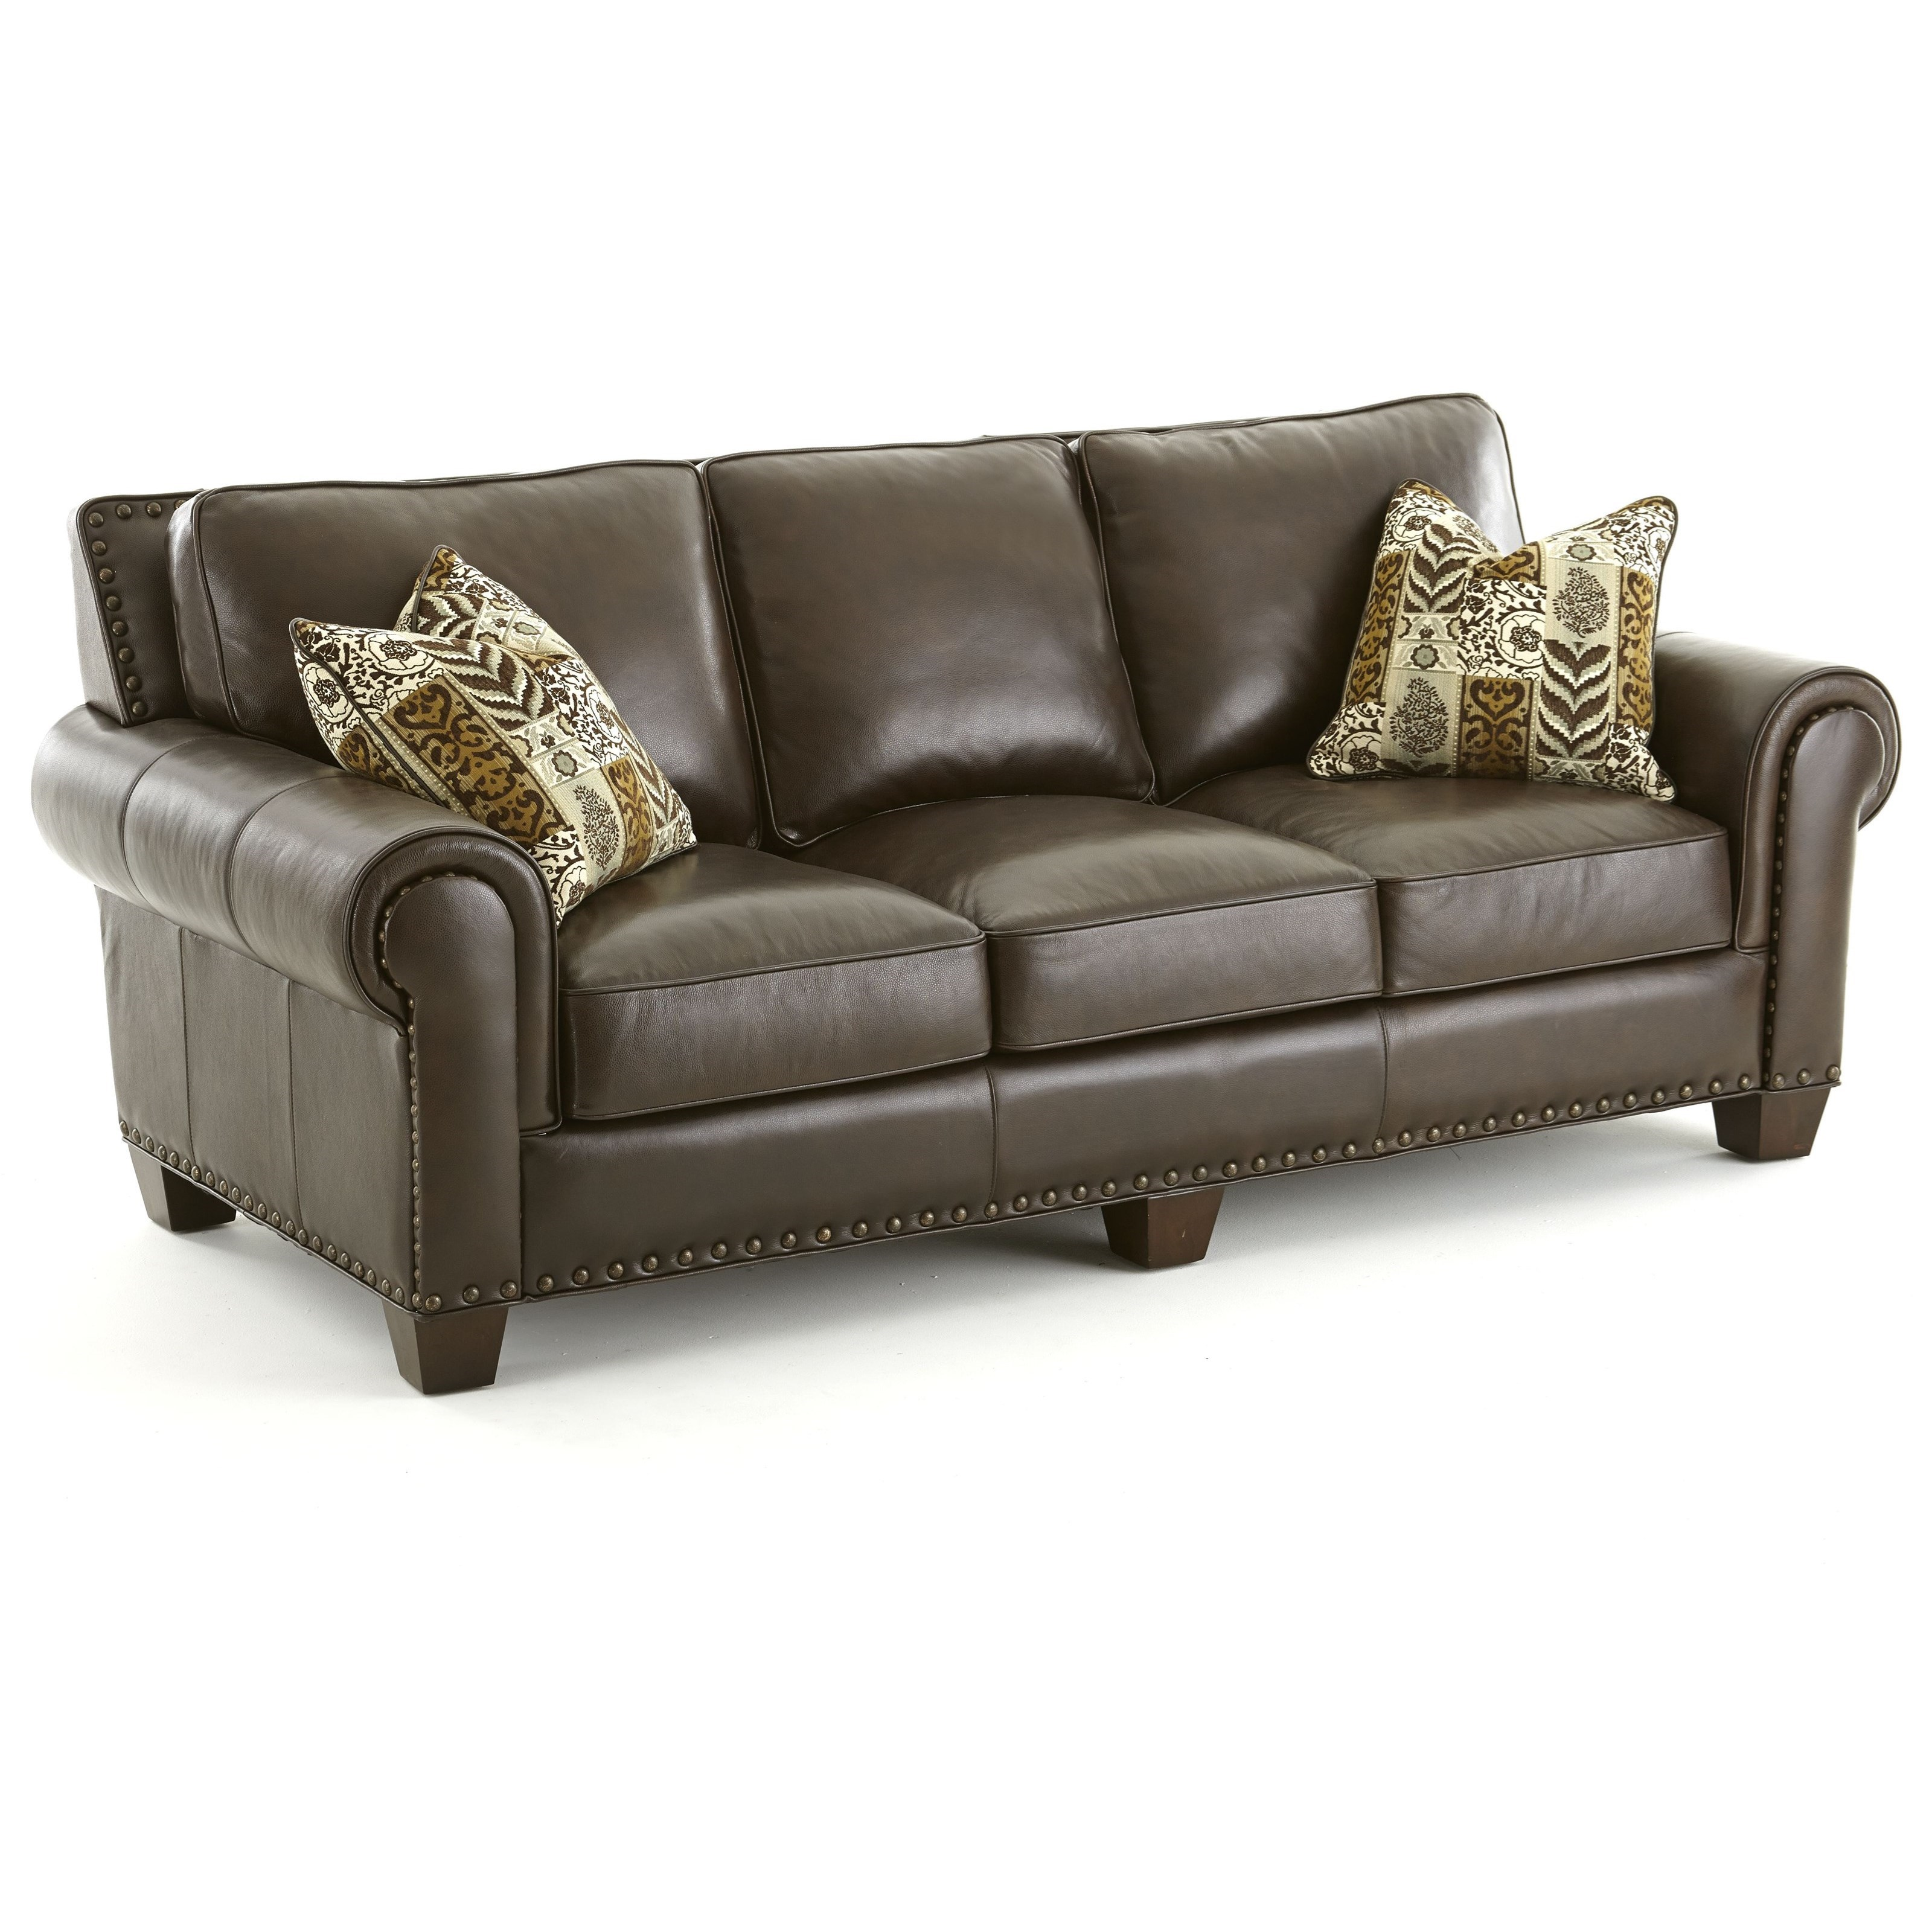 Steve Silver Escher Transitional Sofa - Item Number: SR810S-Coffee Bean